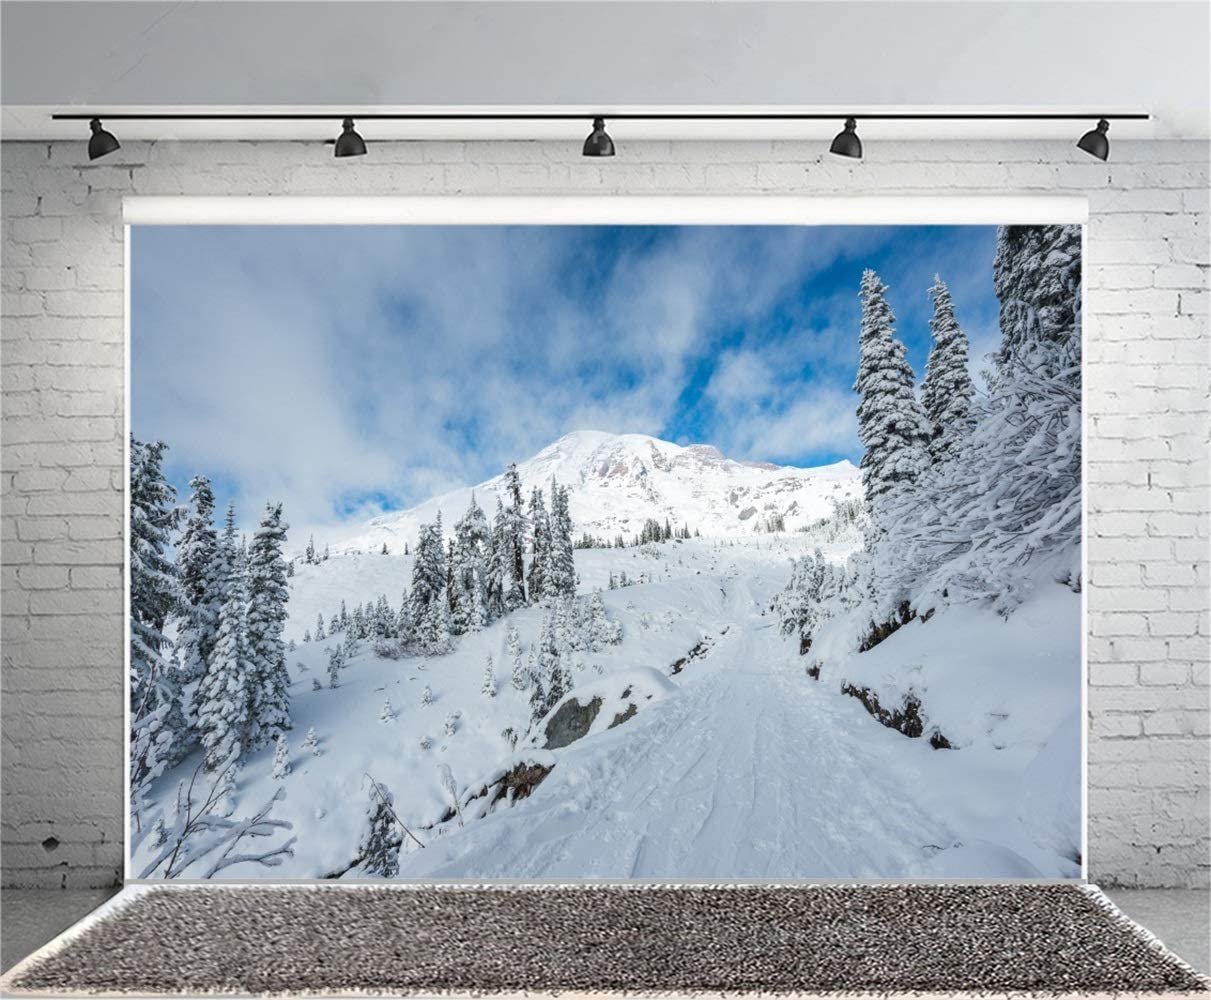 Winter Snowscape Backdrop 10x7 Vinyl Snowy Forest Remote Mountain Frosty Pine Trees Mountain Road Photography Background Winter Scenic Backdrop Kid Baby Shoot Poster Indoor Decors Wallpeper